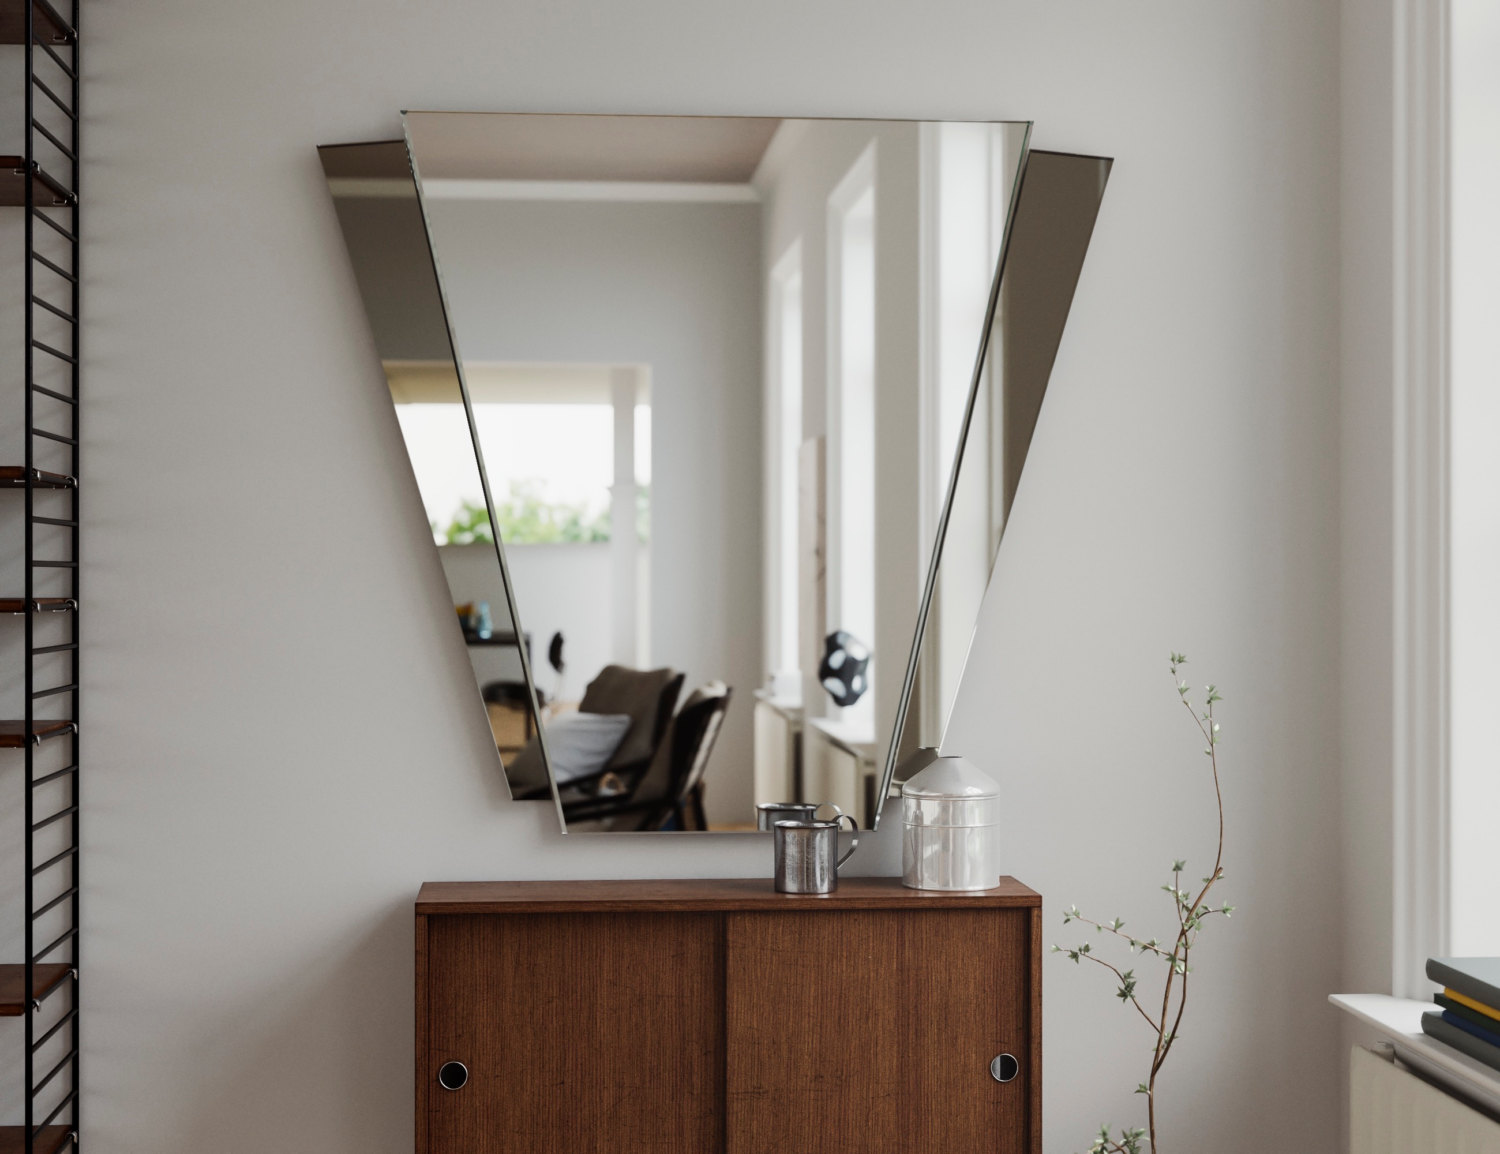 Fantail style wall mirror